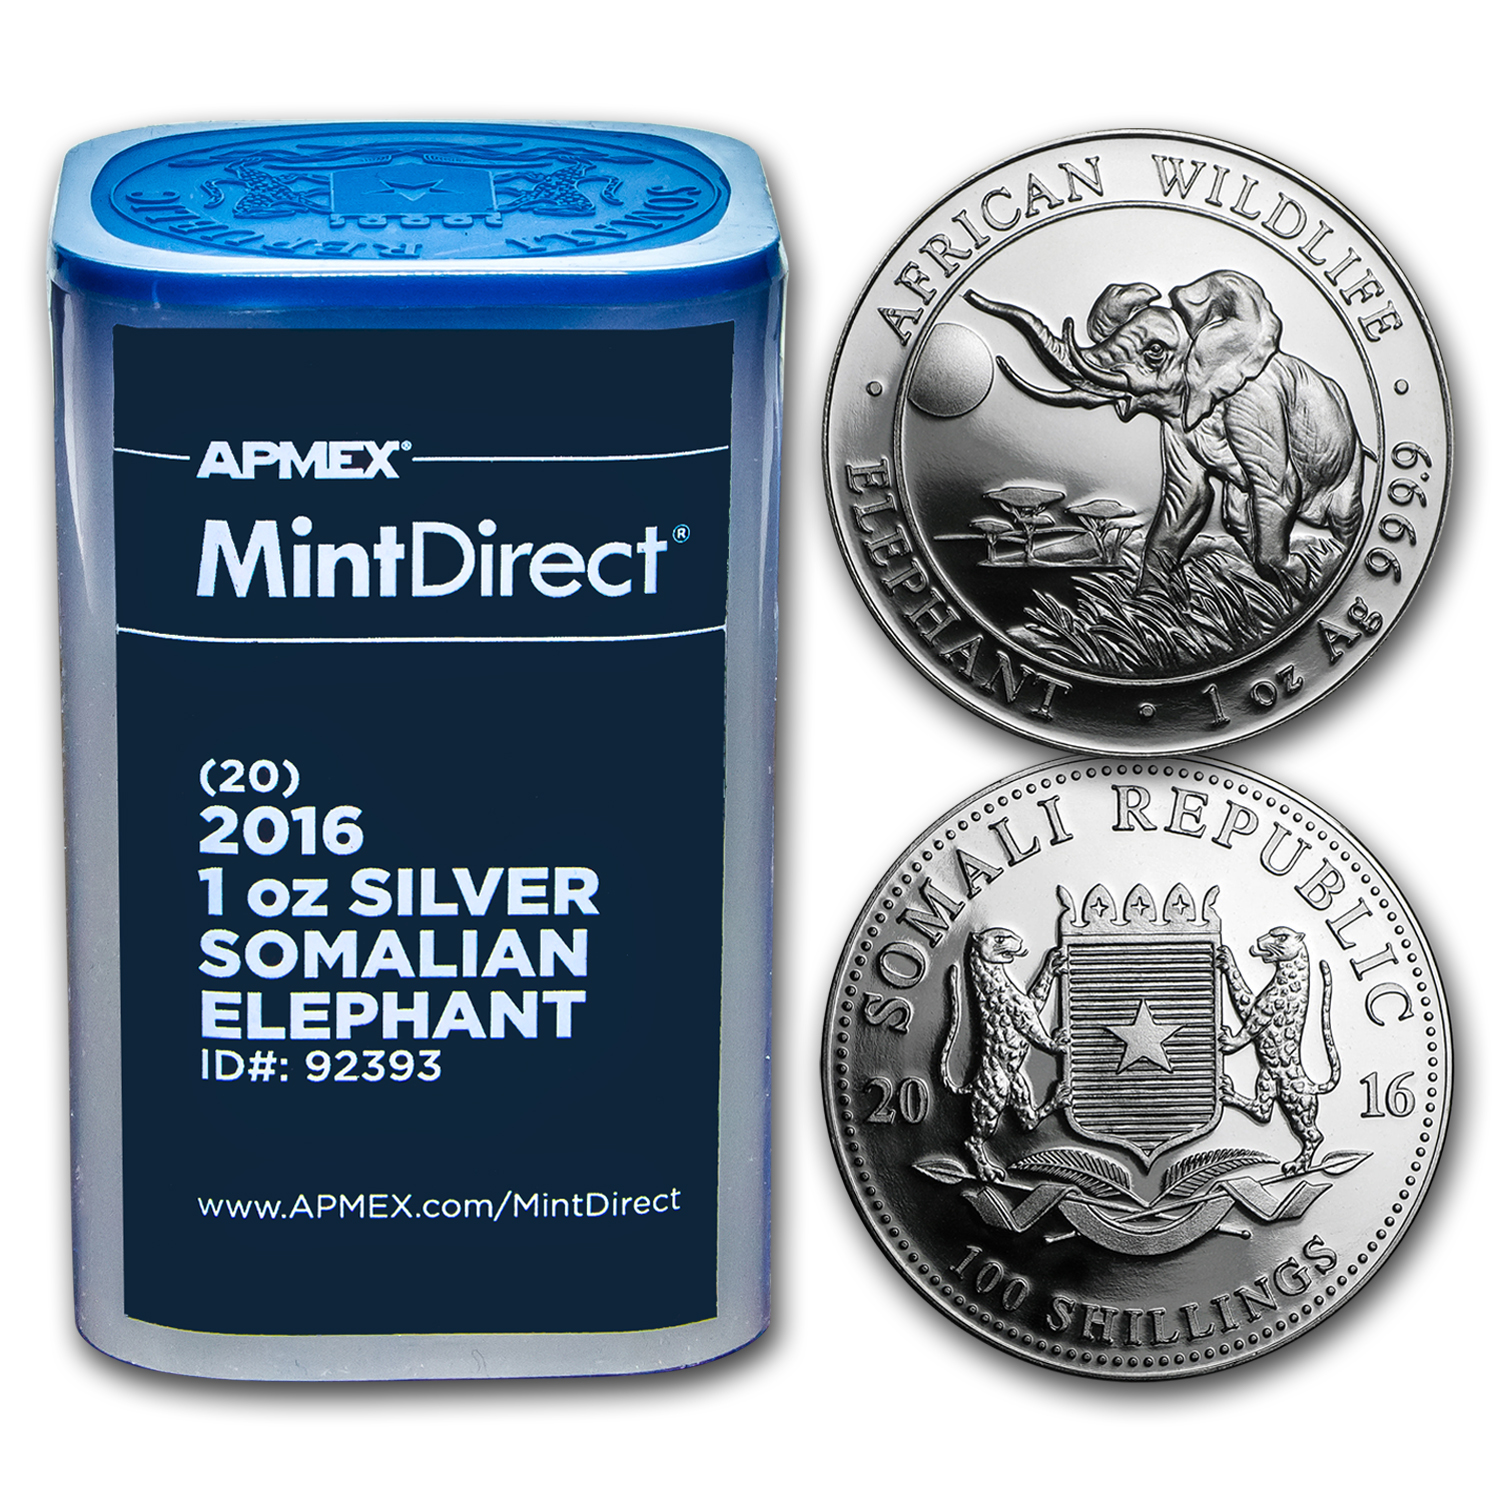 2016 Somalia 1 oz Silver Elephant (20-Coin MintDirect® Tube)